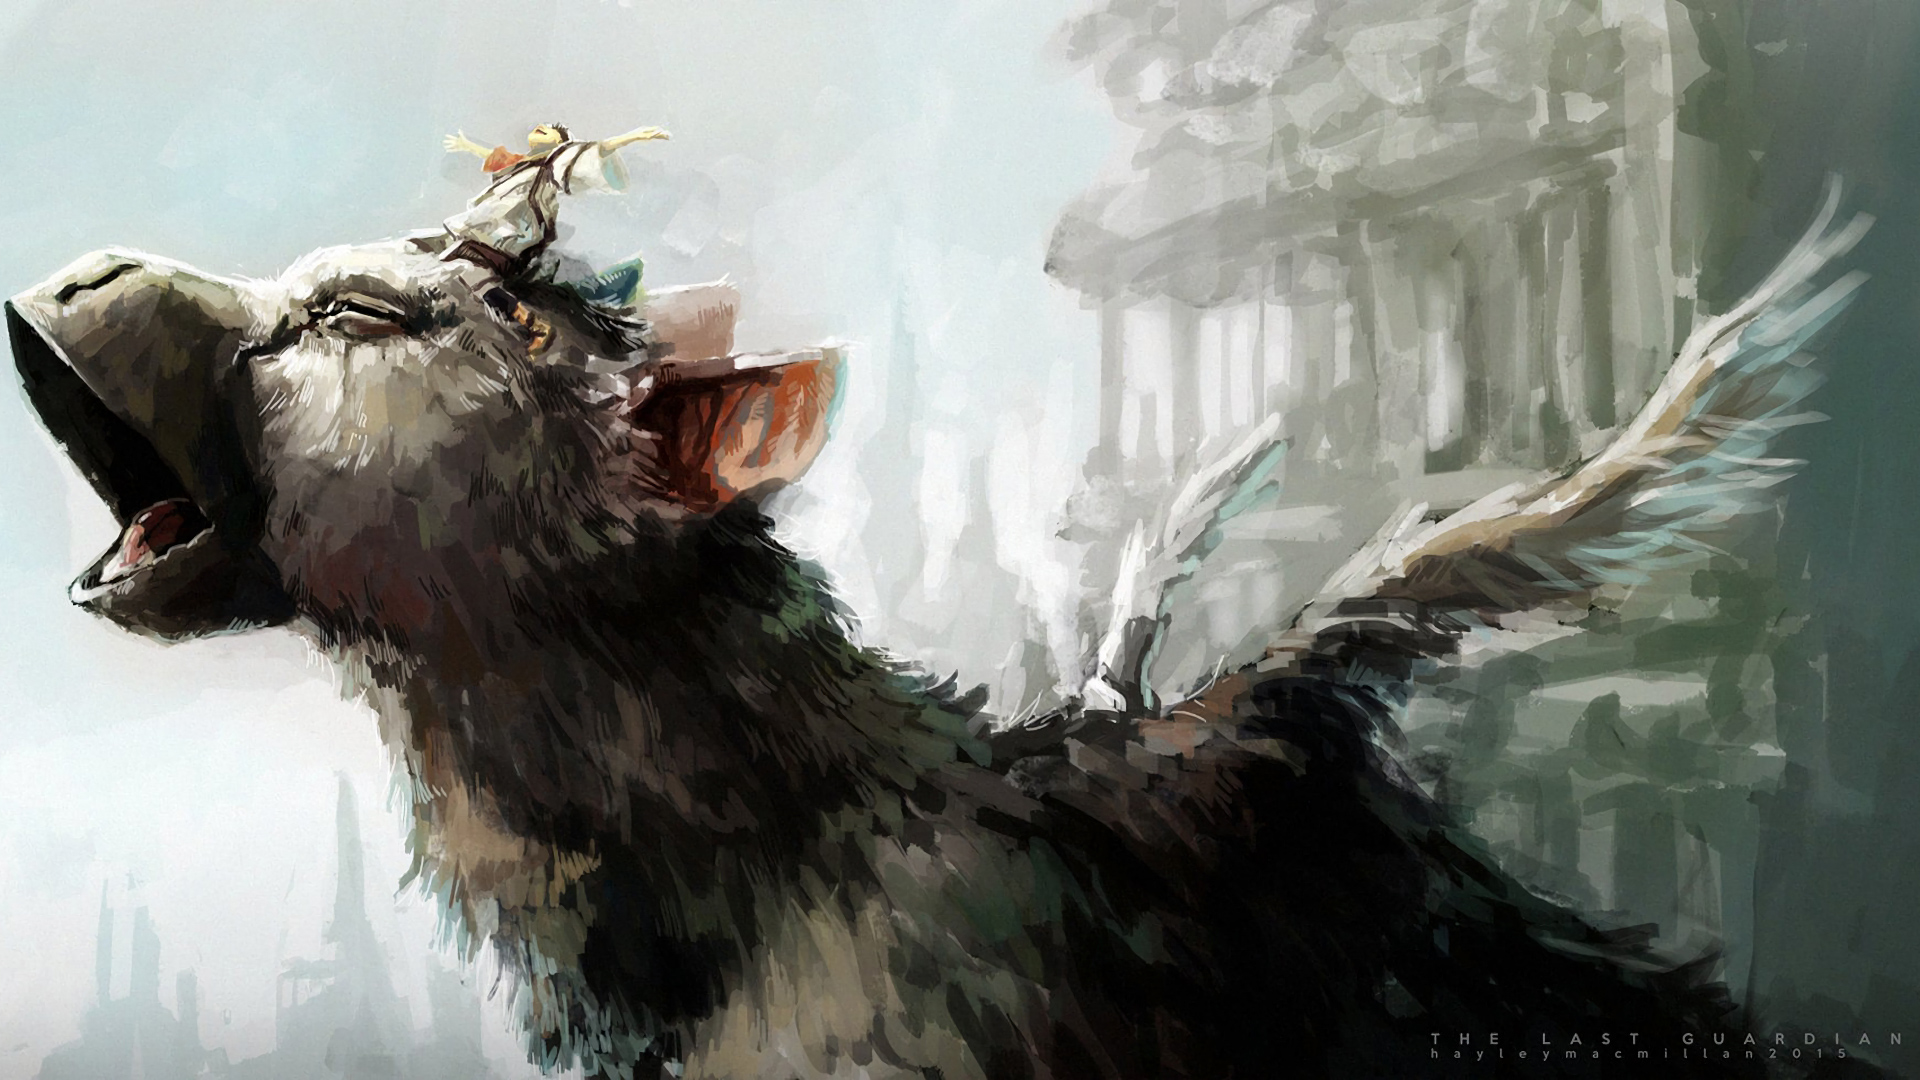 Trico With The Boy On His Head Wallpaper From The Last Guardian